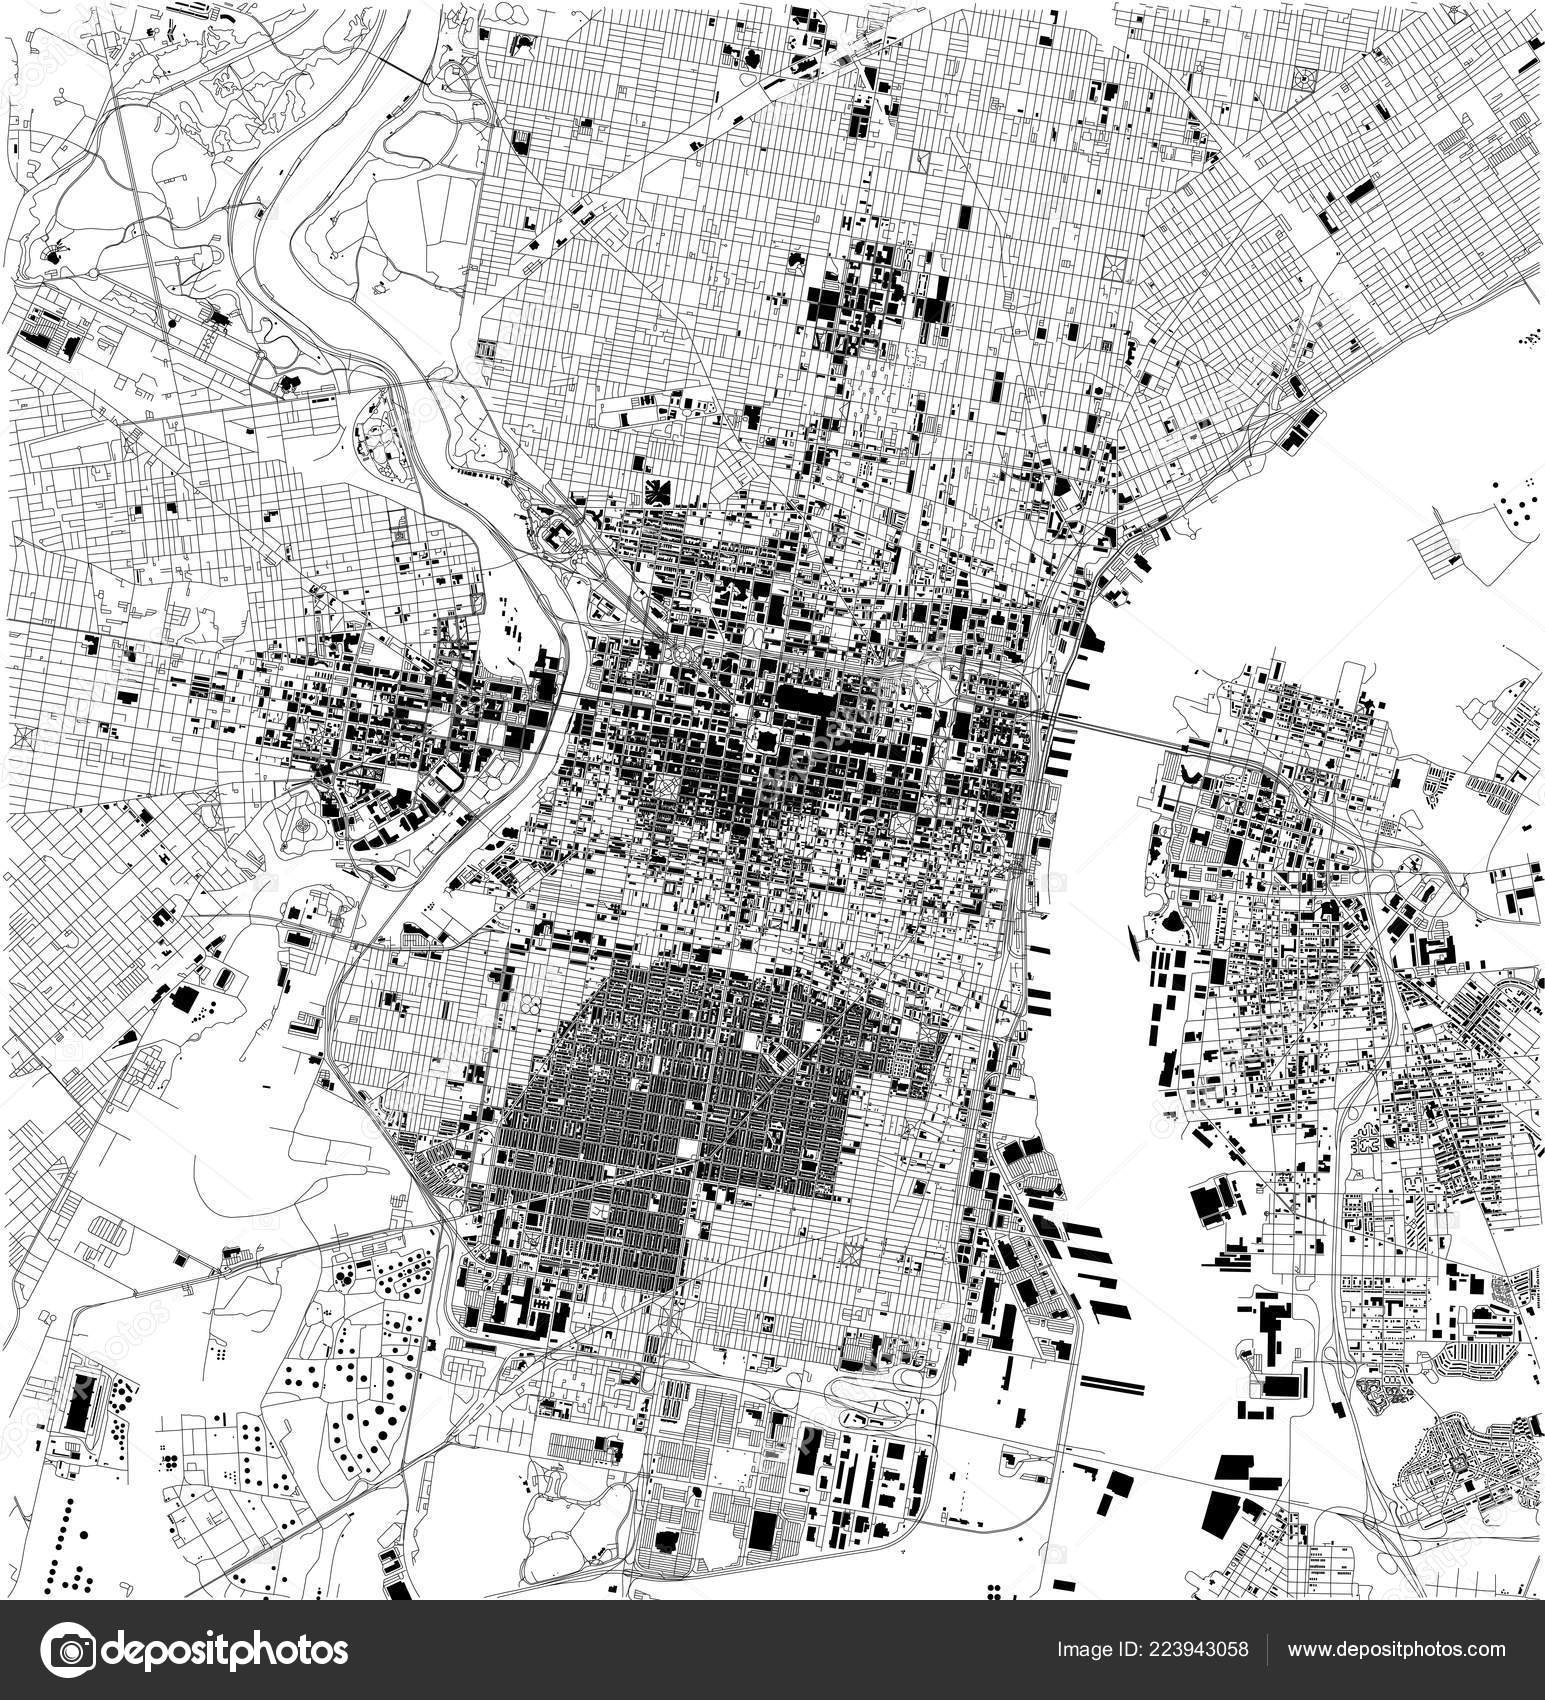 Satellite Map Philadelphia Philly Pennsylvania City Streets ... on black and white portraits of women, latitude and longitude of usa, black and white map of asia,